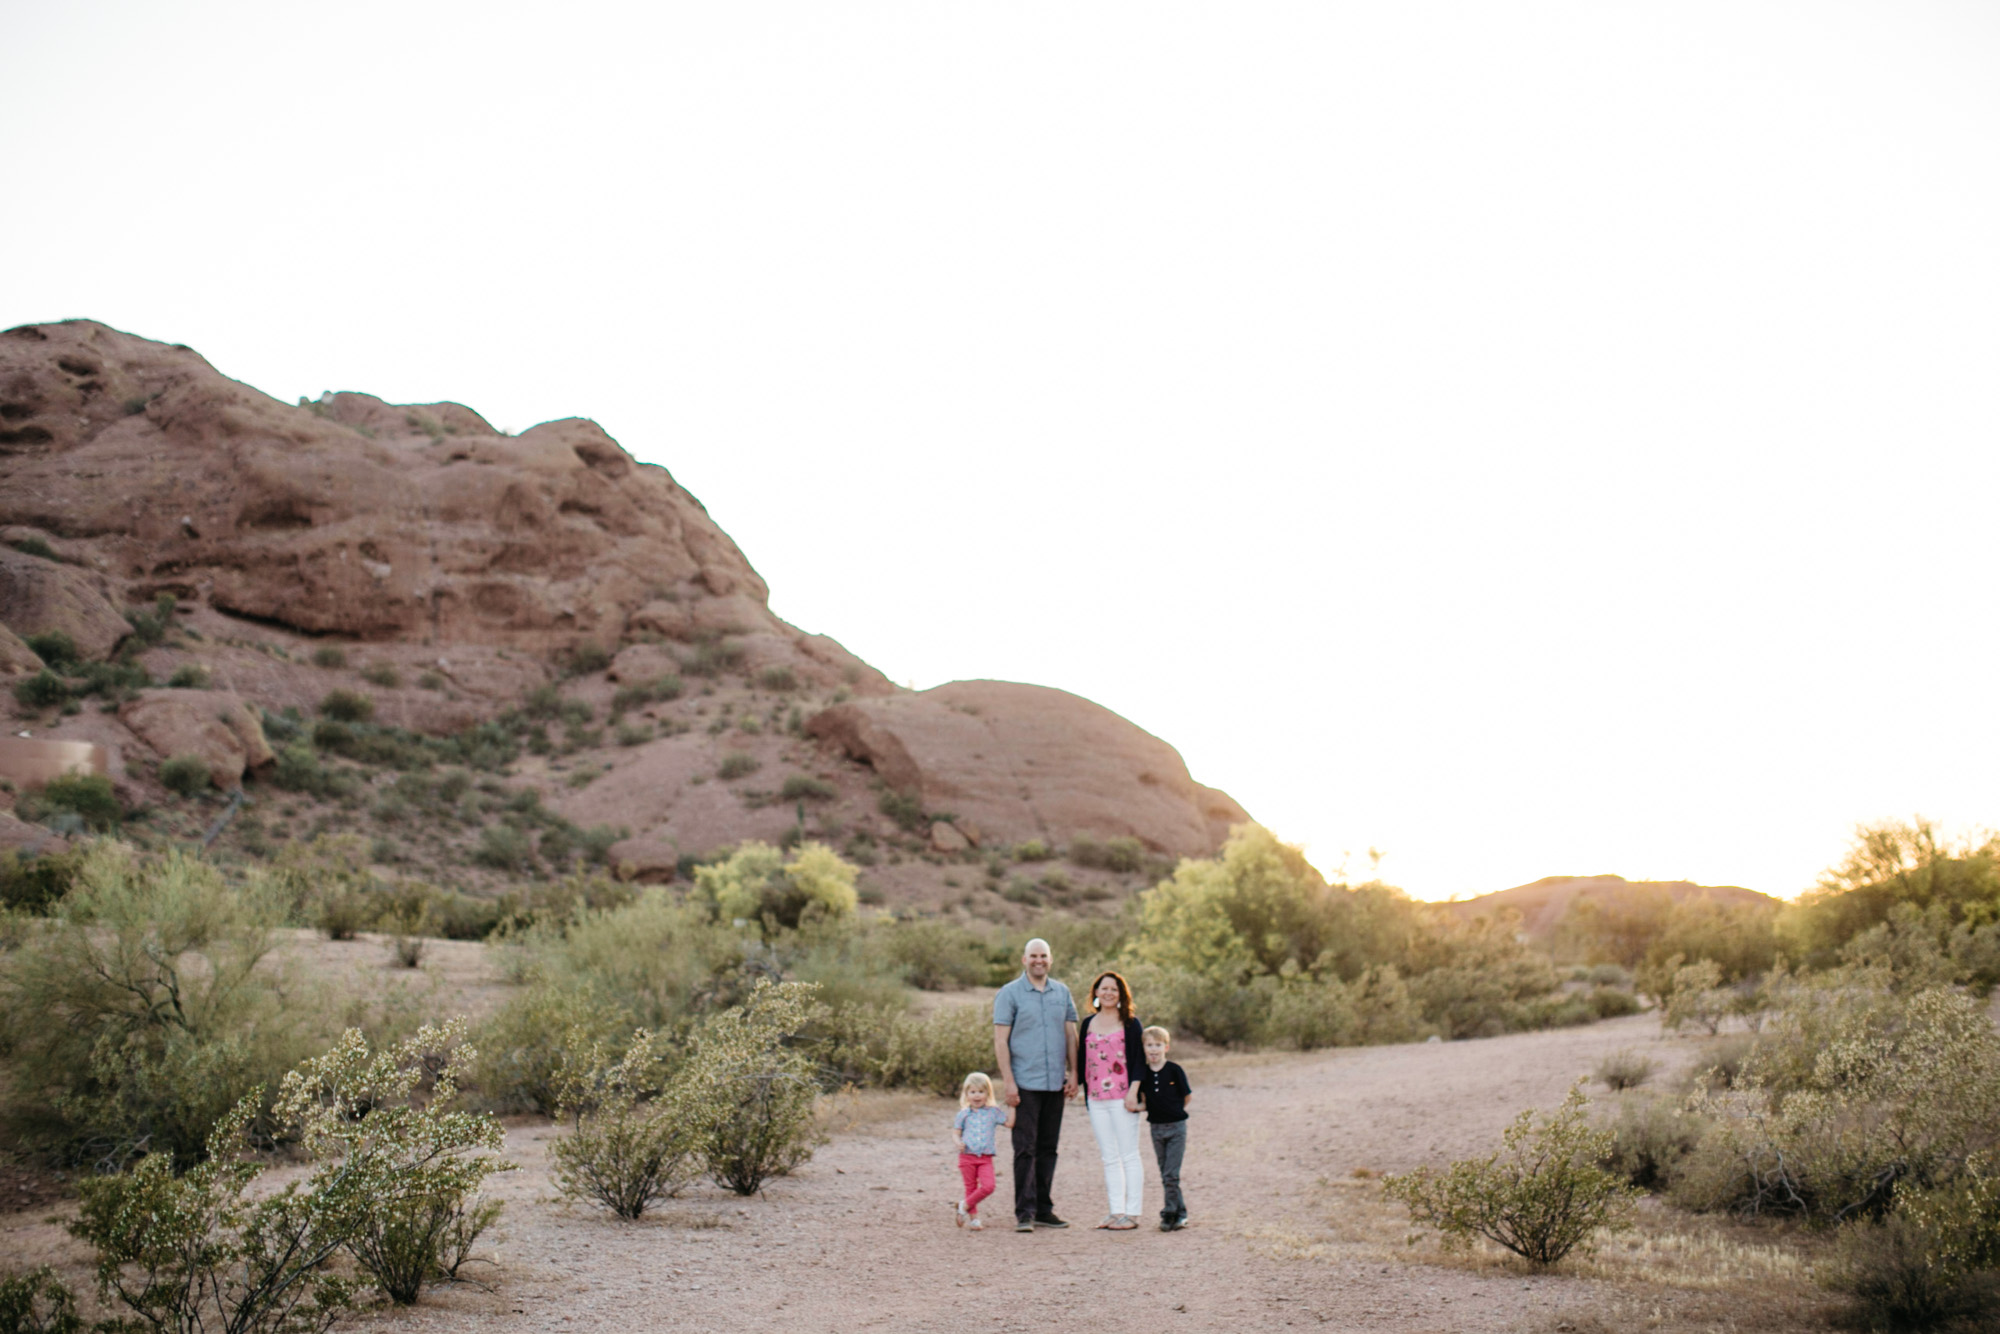 scottsdale-family-lifestyle-photographer-37.jpg